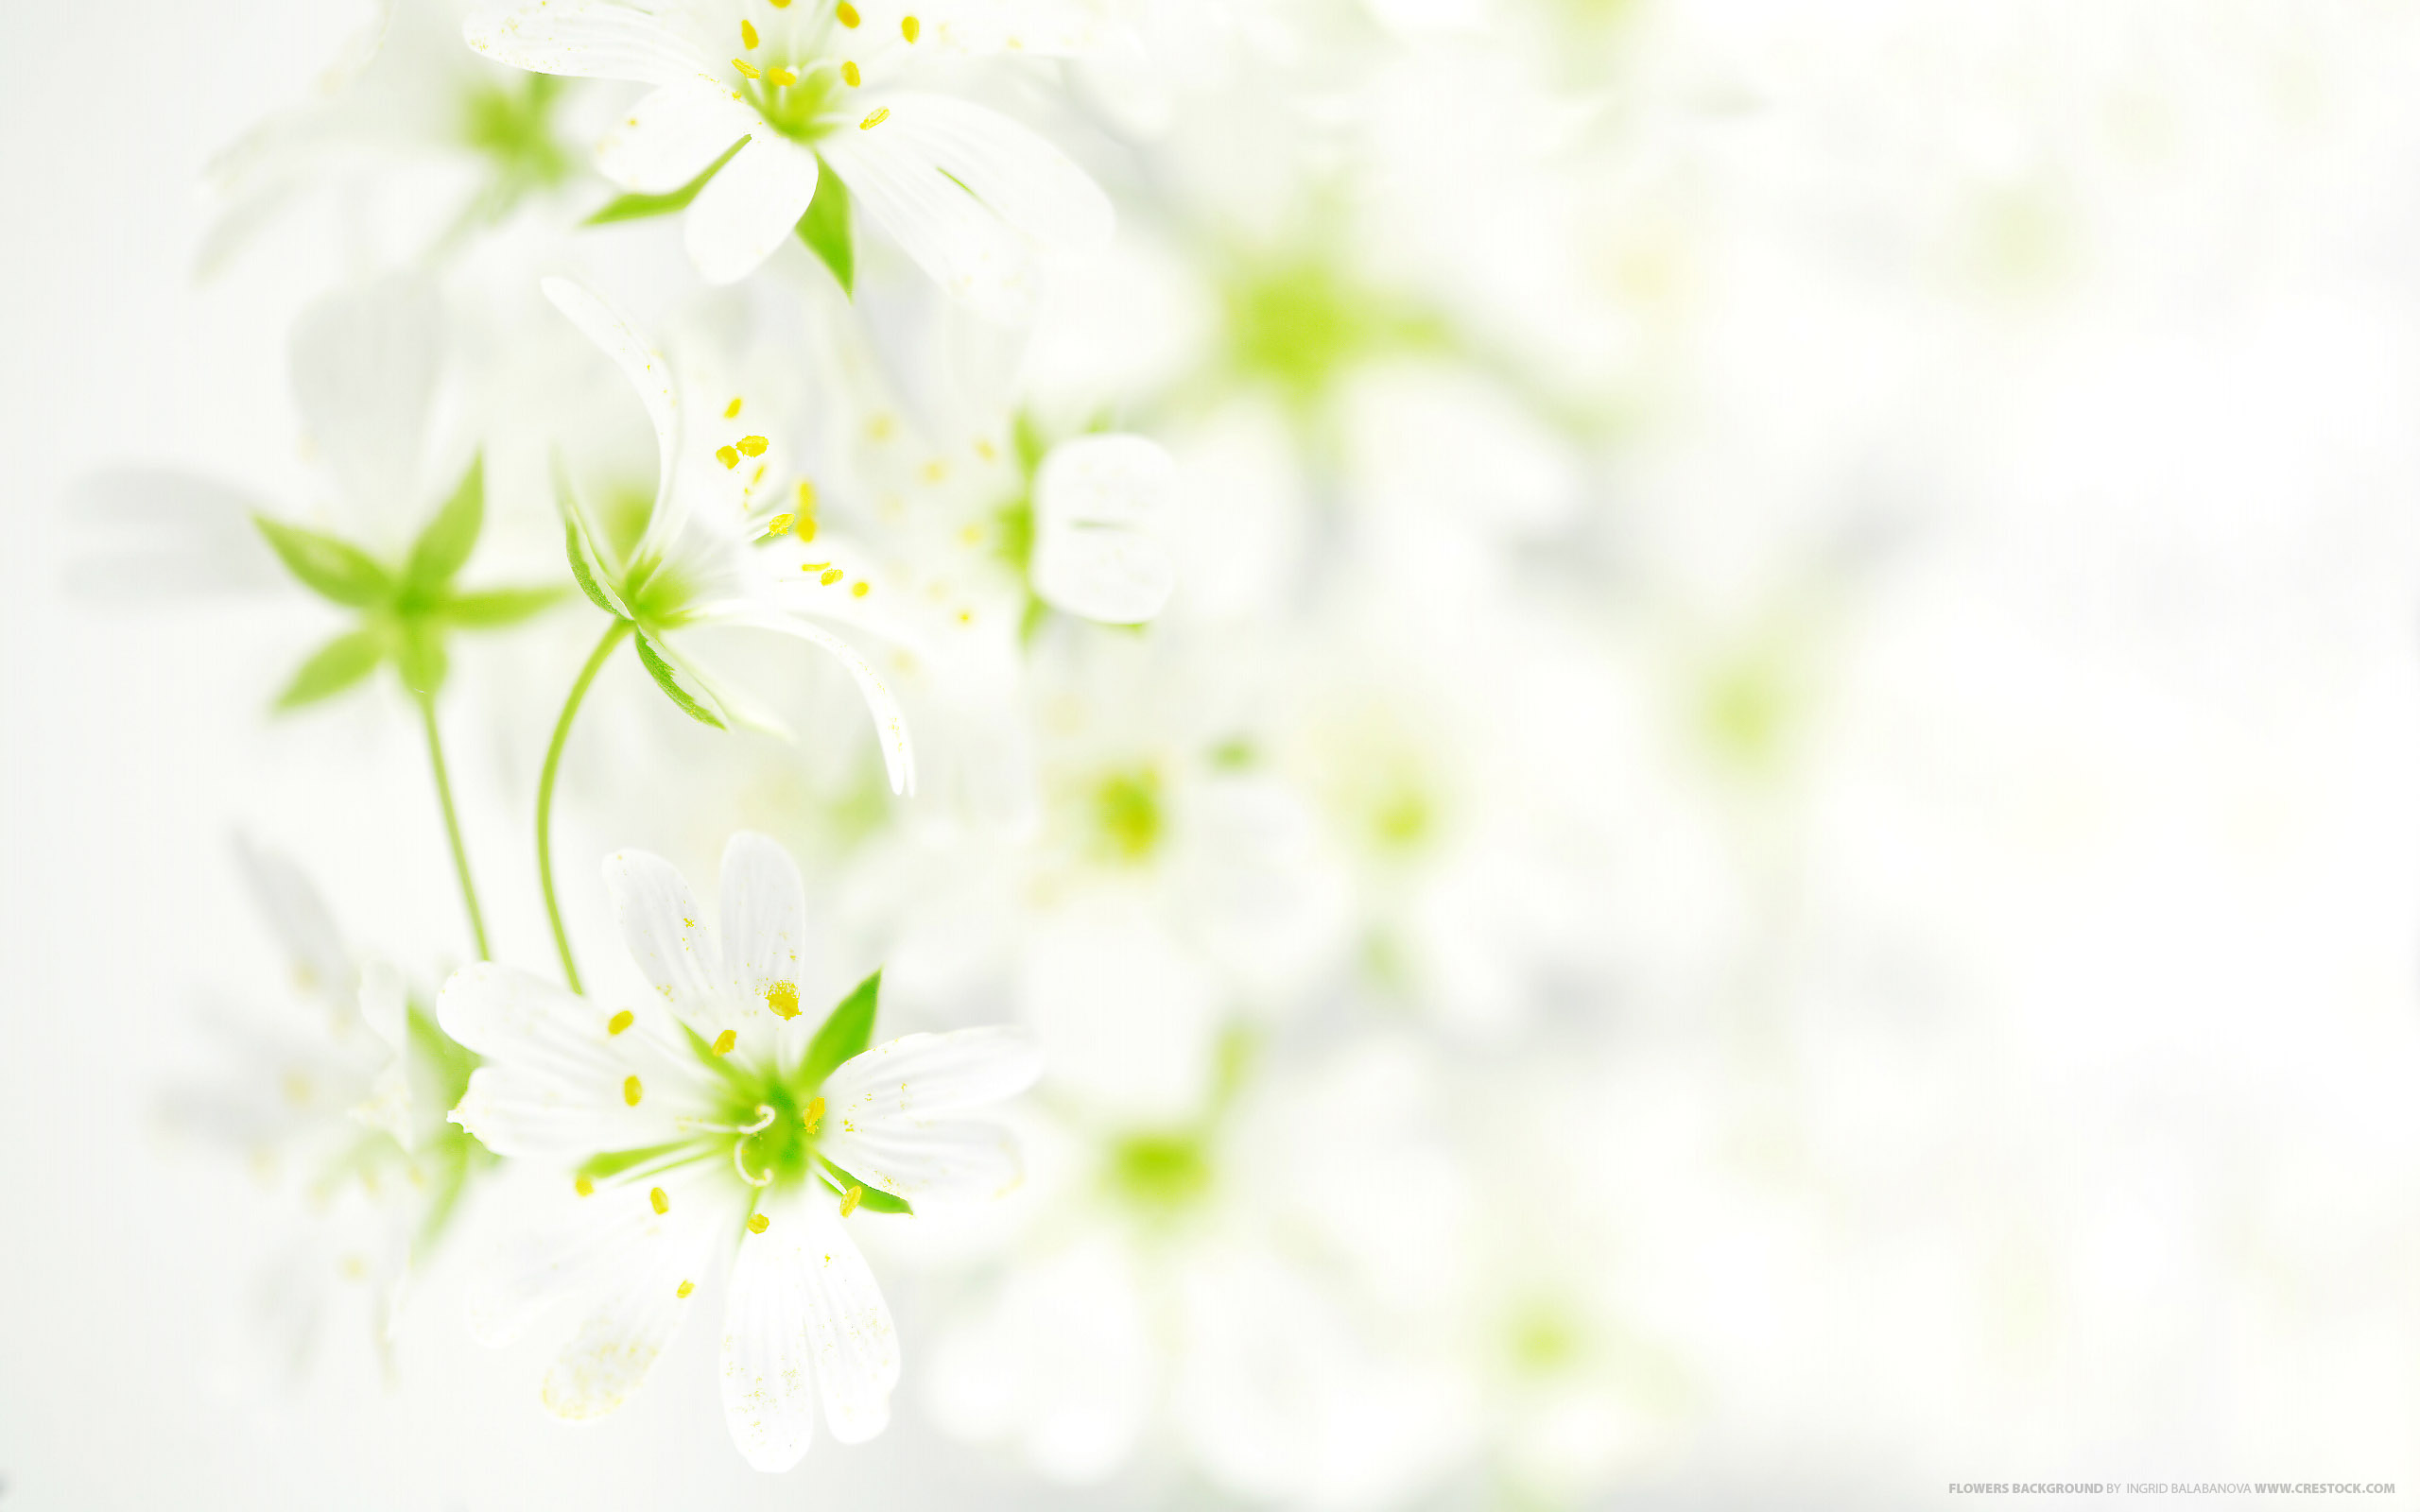 Flowers background wallpaper | 2560x1600 | #30119